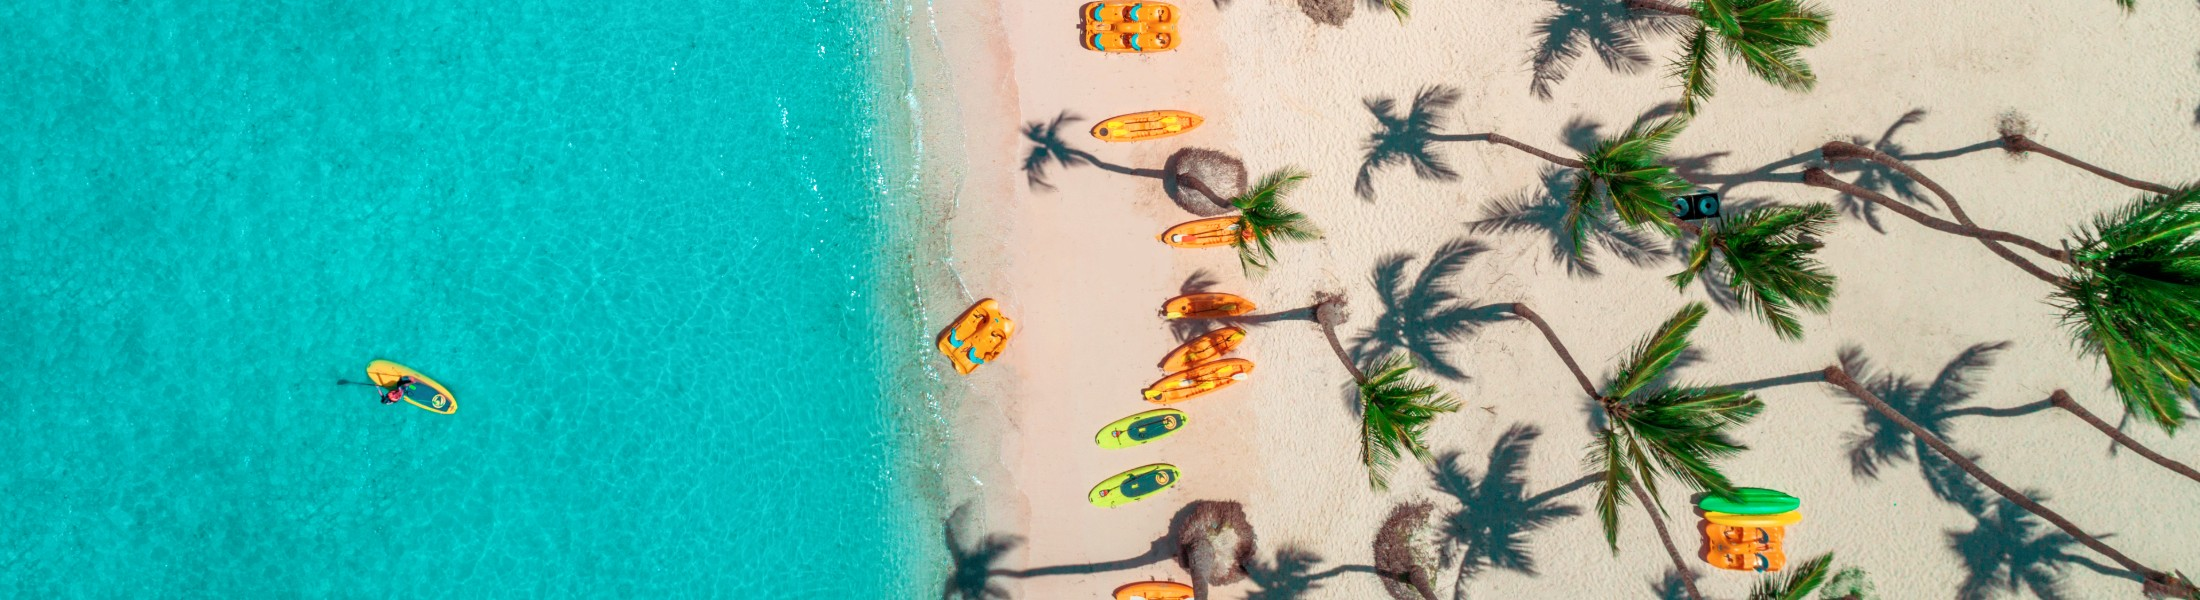 Aerial view of a Caribbean beach with palm trees